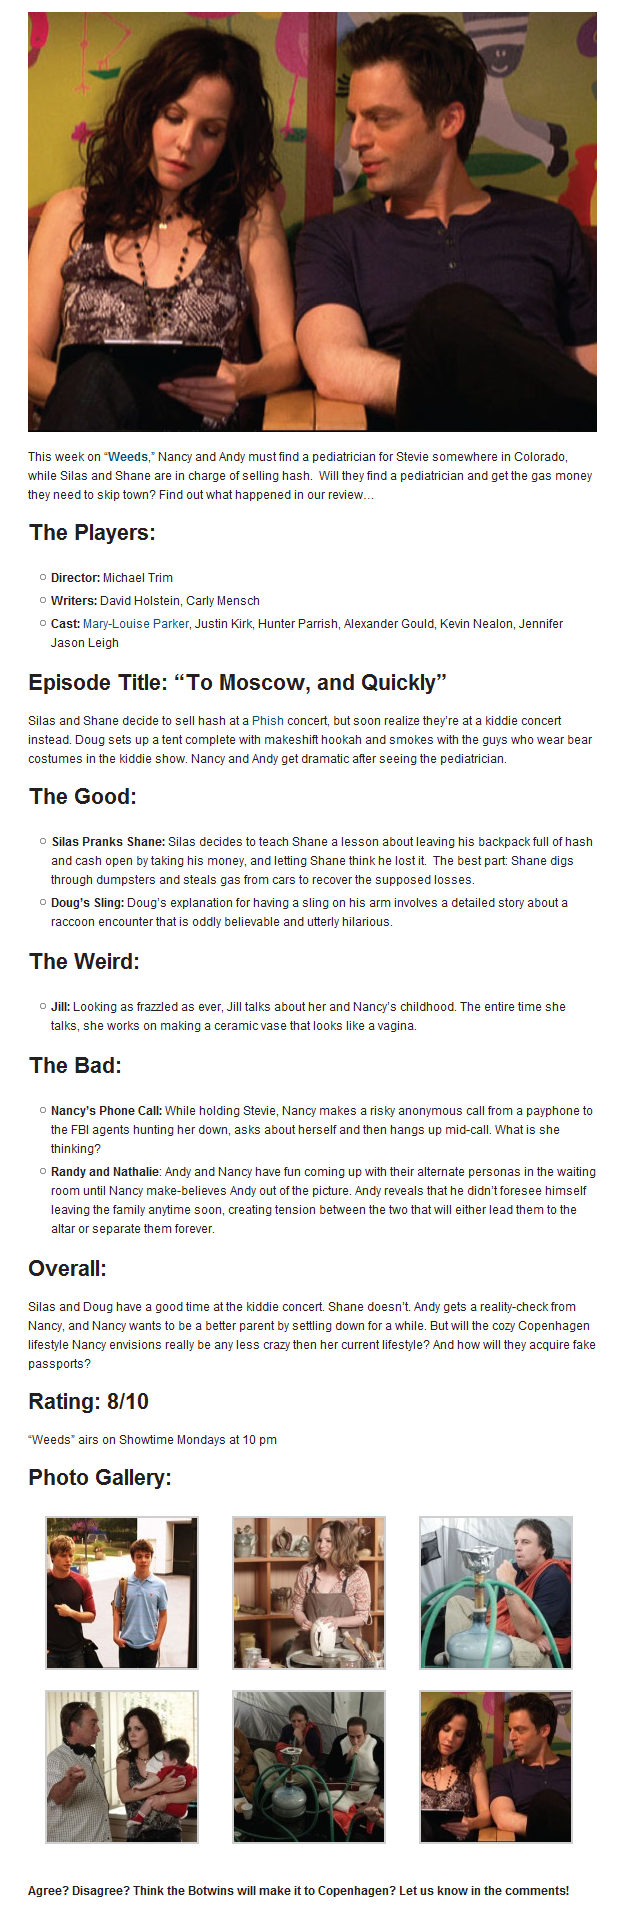 TV Review: Weeds: To Moscow and Quickly (6.9)